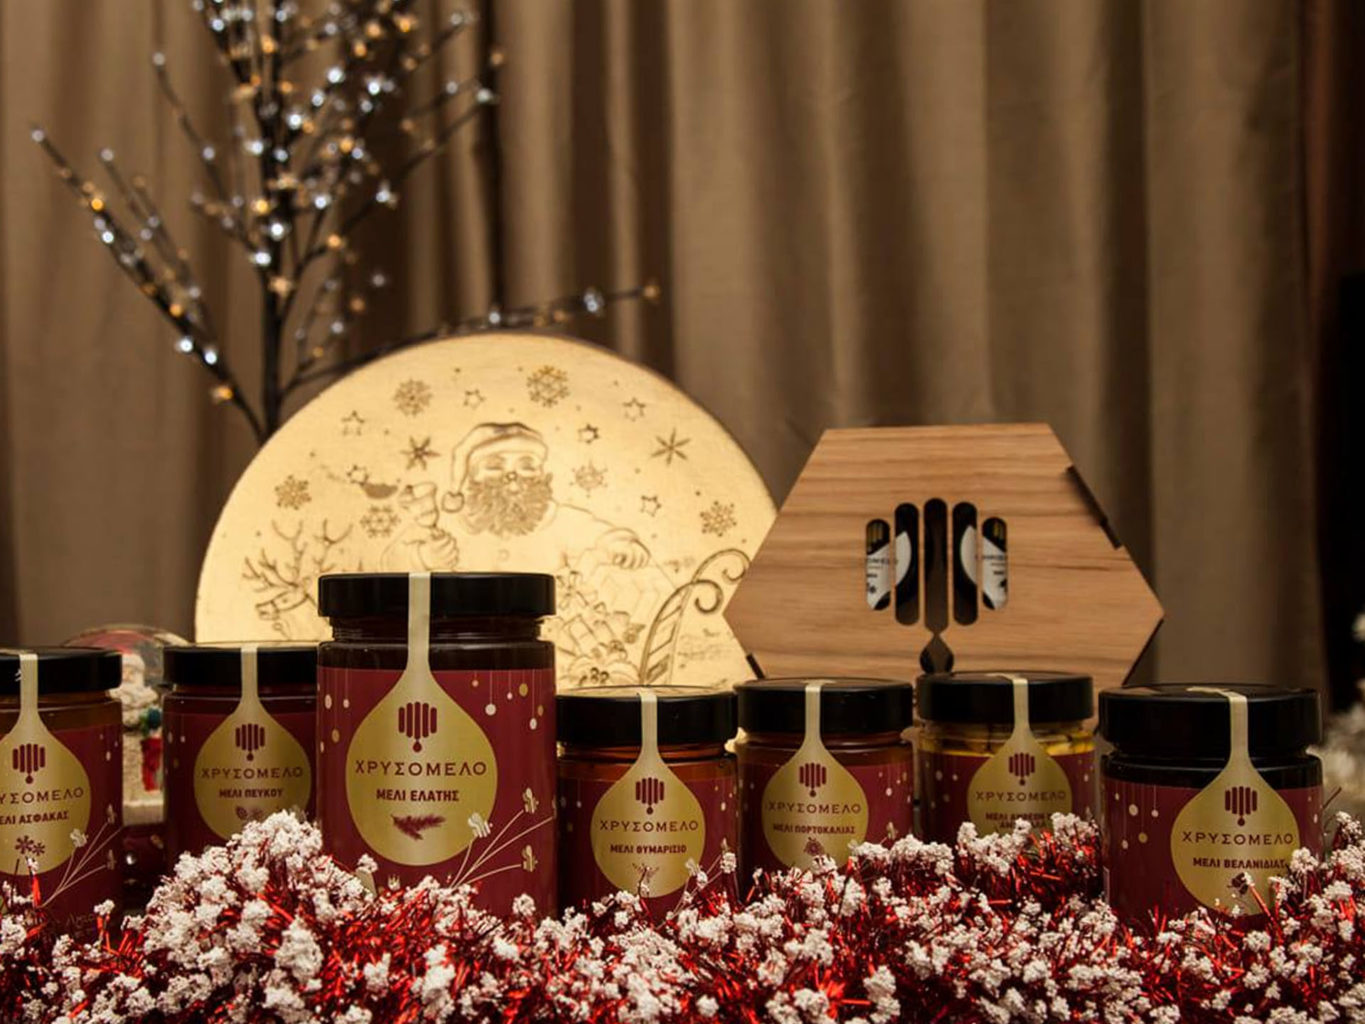 Chrisomelo honey packaging for christmas